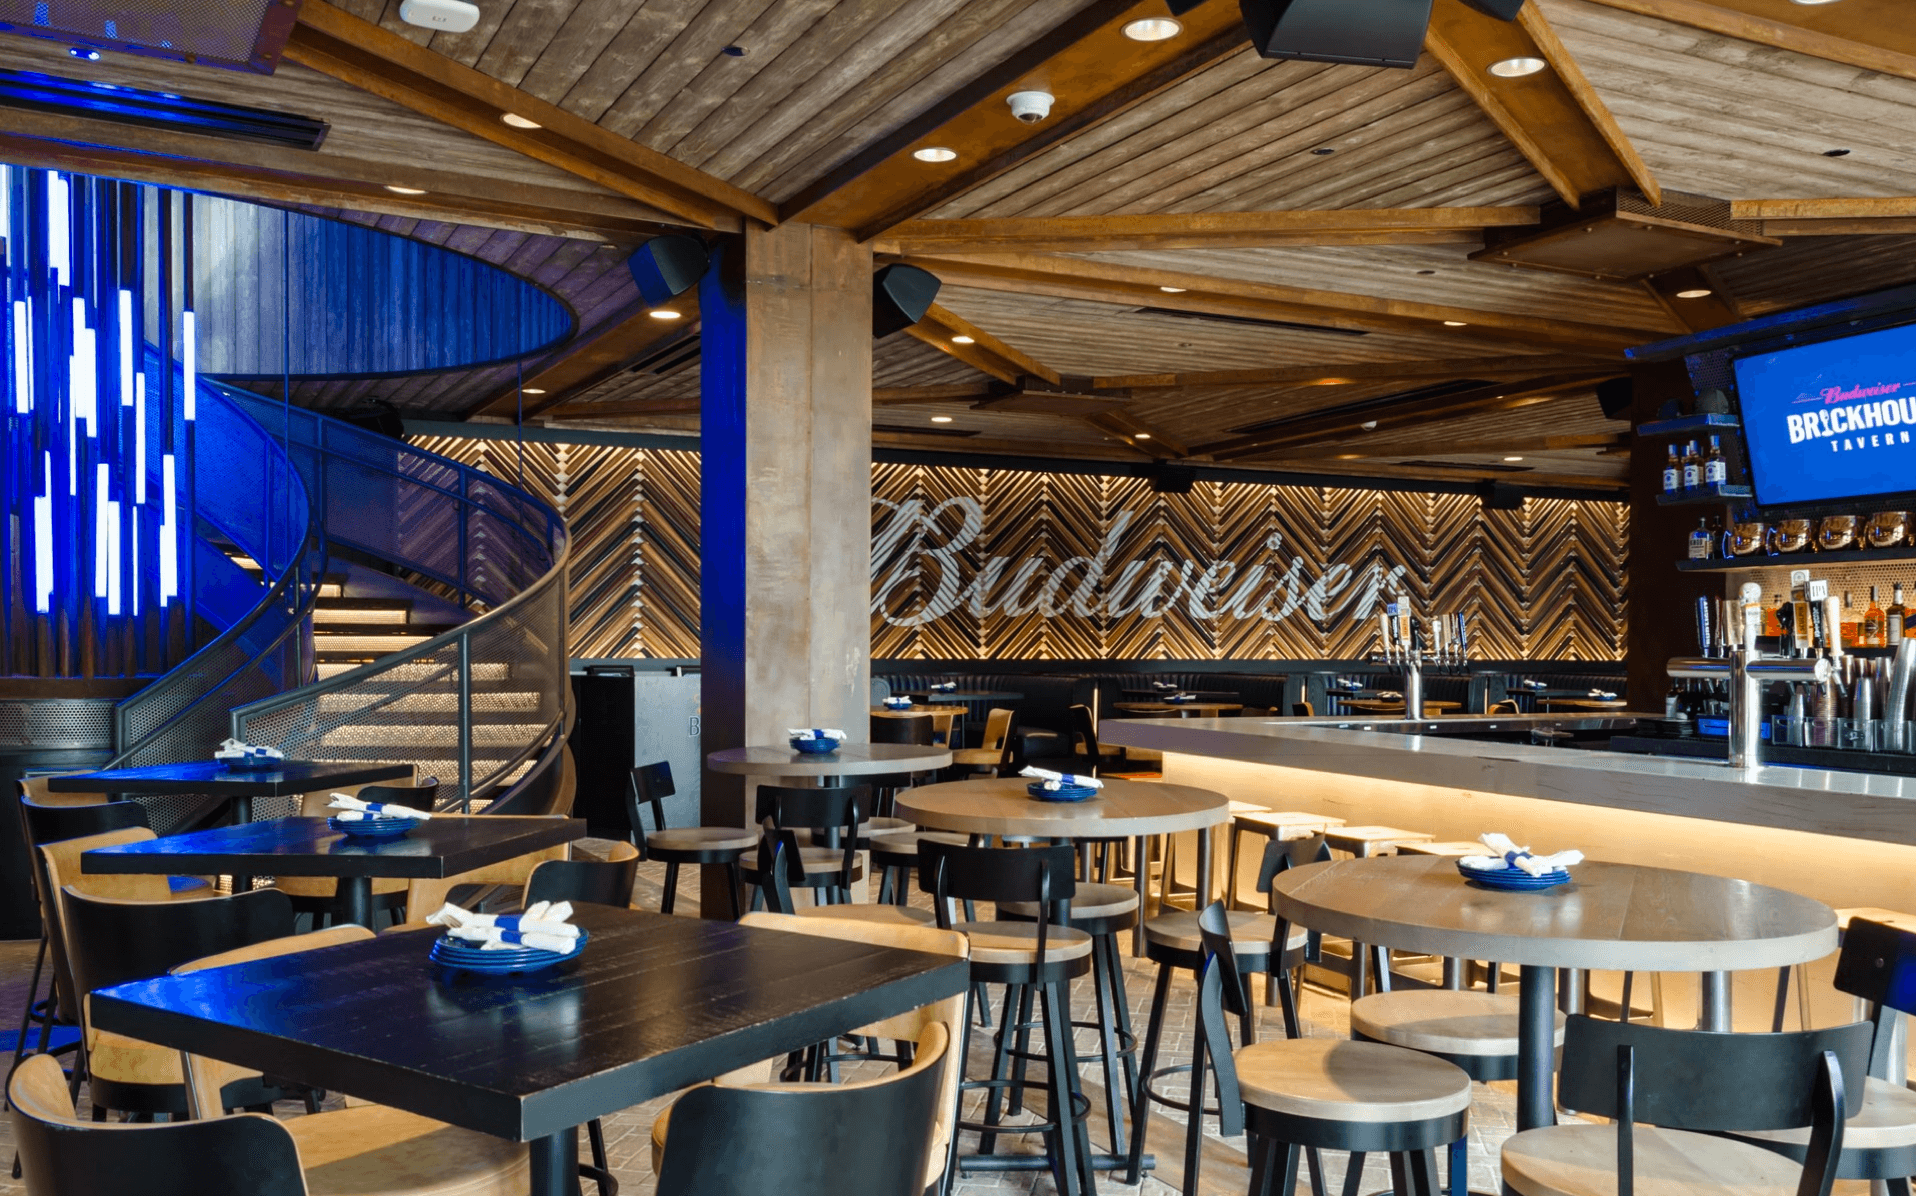 Budweiser Brickhouse Tavern - An elevated sports-dining experience with four expansive bars, two outdoor terraces and stunning views of historic Wrigley Field and the Chicago skyline.3647 N Clark StChicago, IL 60613773-377-4770